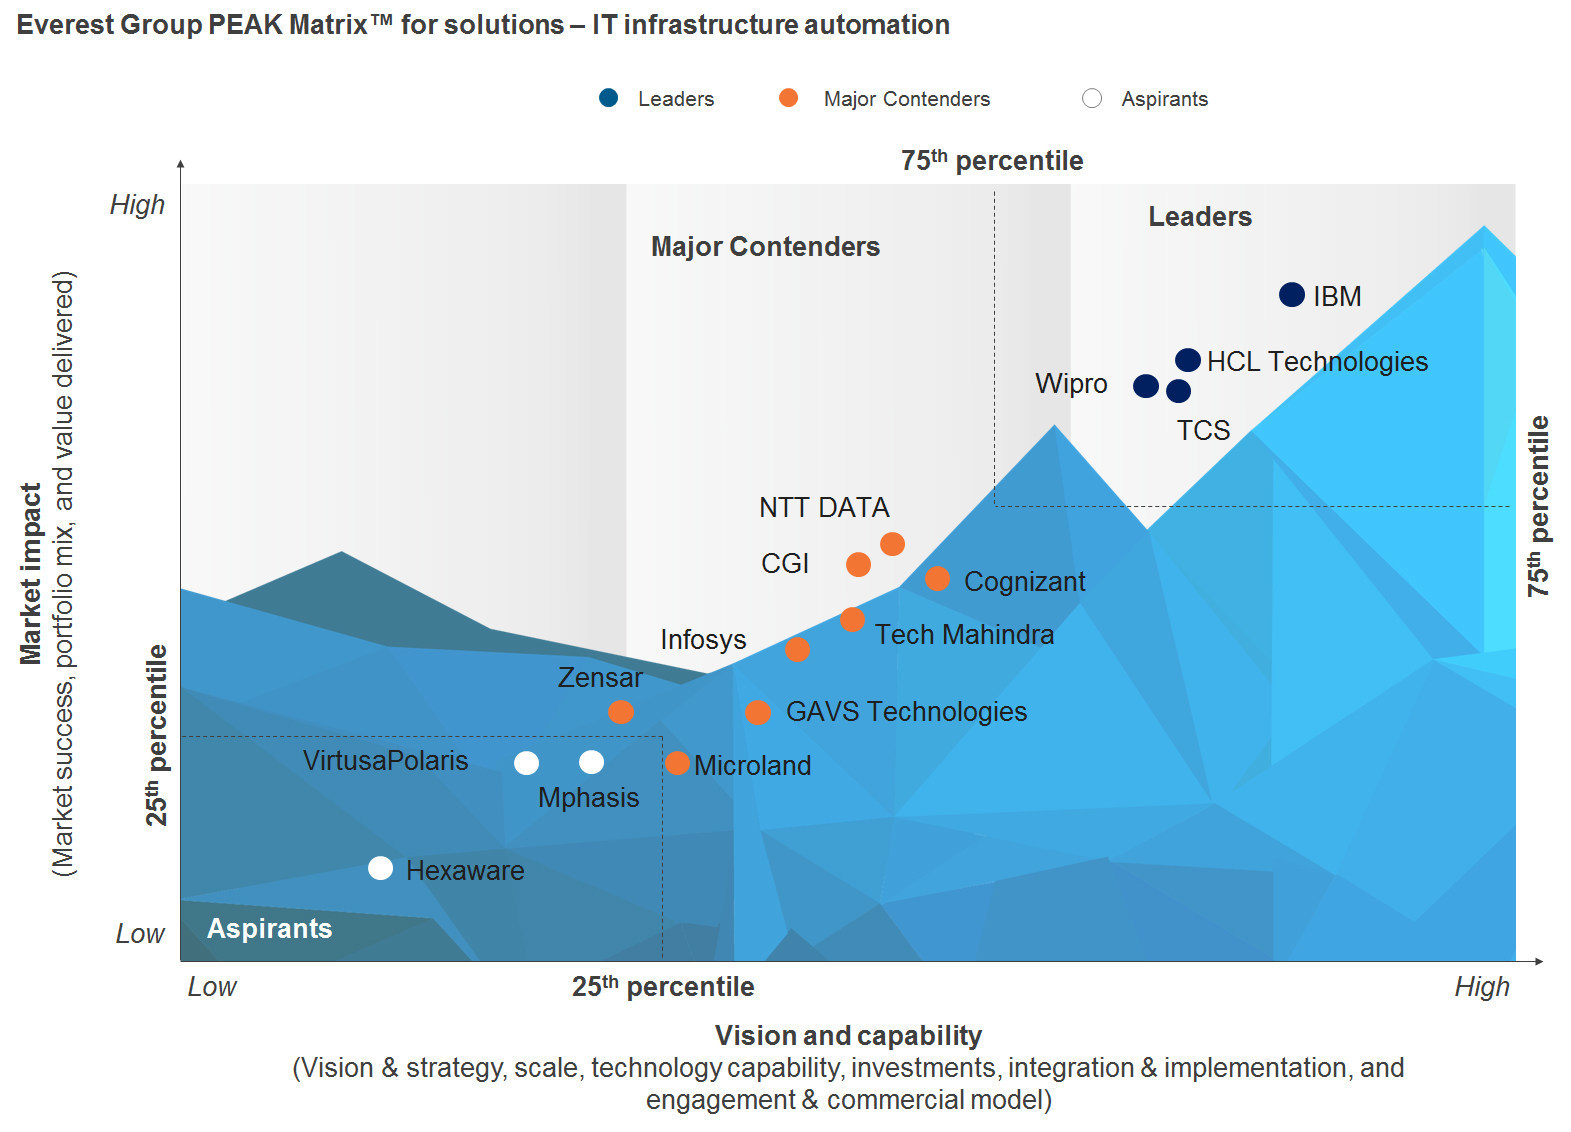 Everest Group has named IBM as the top Leader in the research firm's recent IT infrastructure automation - Market Update and PEAK MatrixTM Assessment for Solutions report (Image Courtesy of Everest Group)